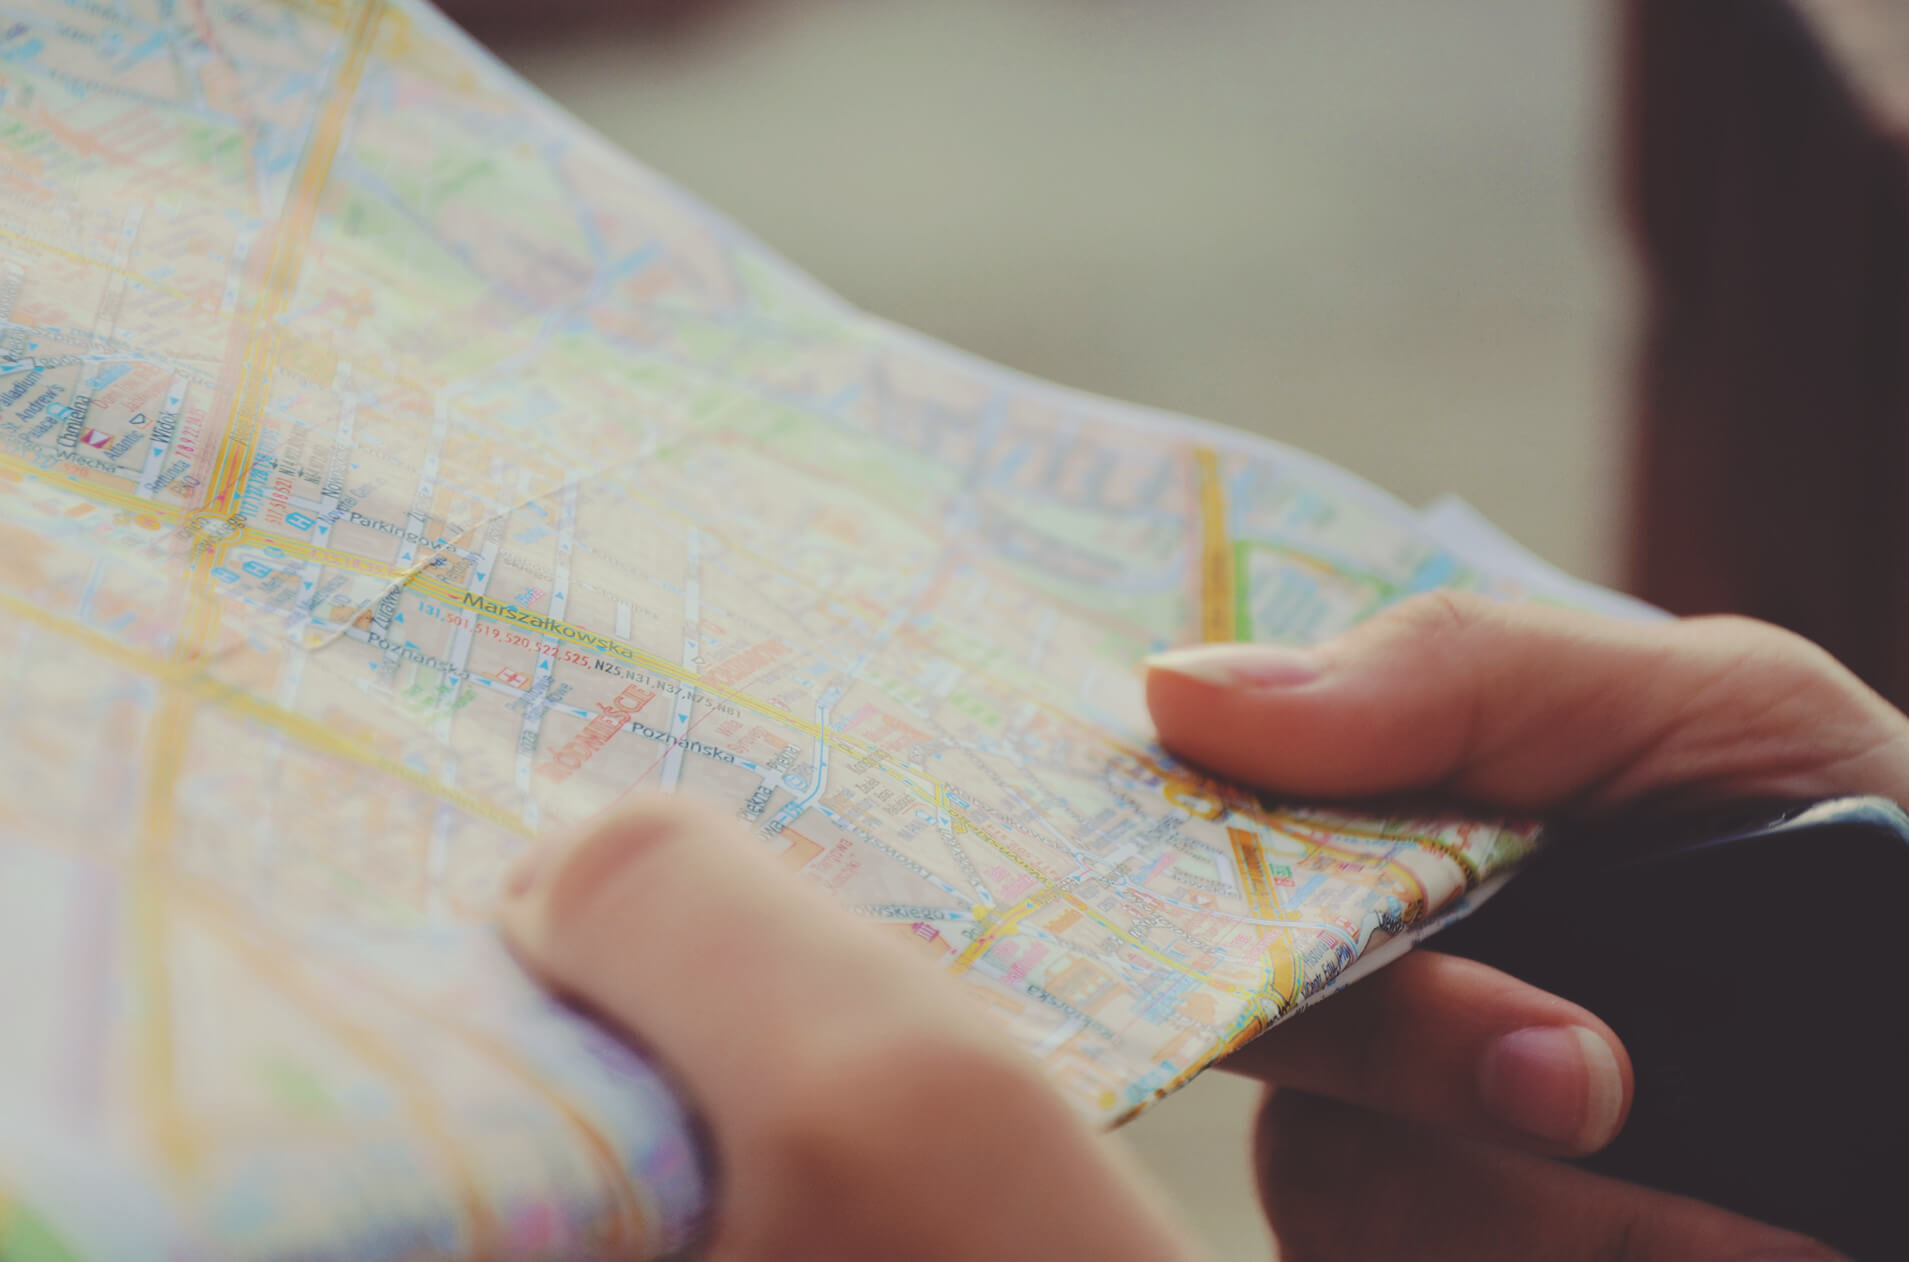 Close up of person holding map